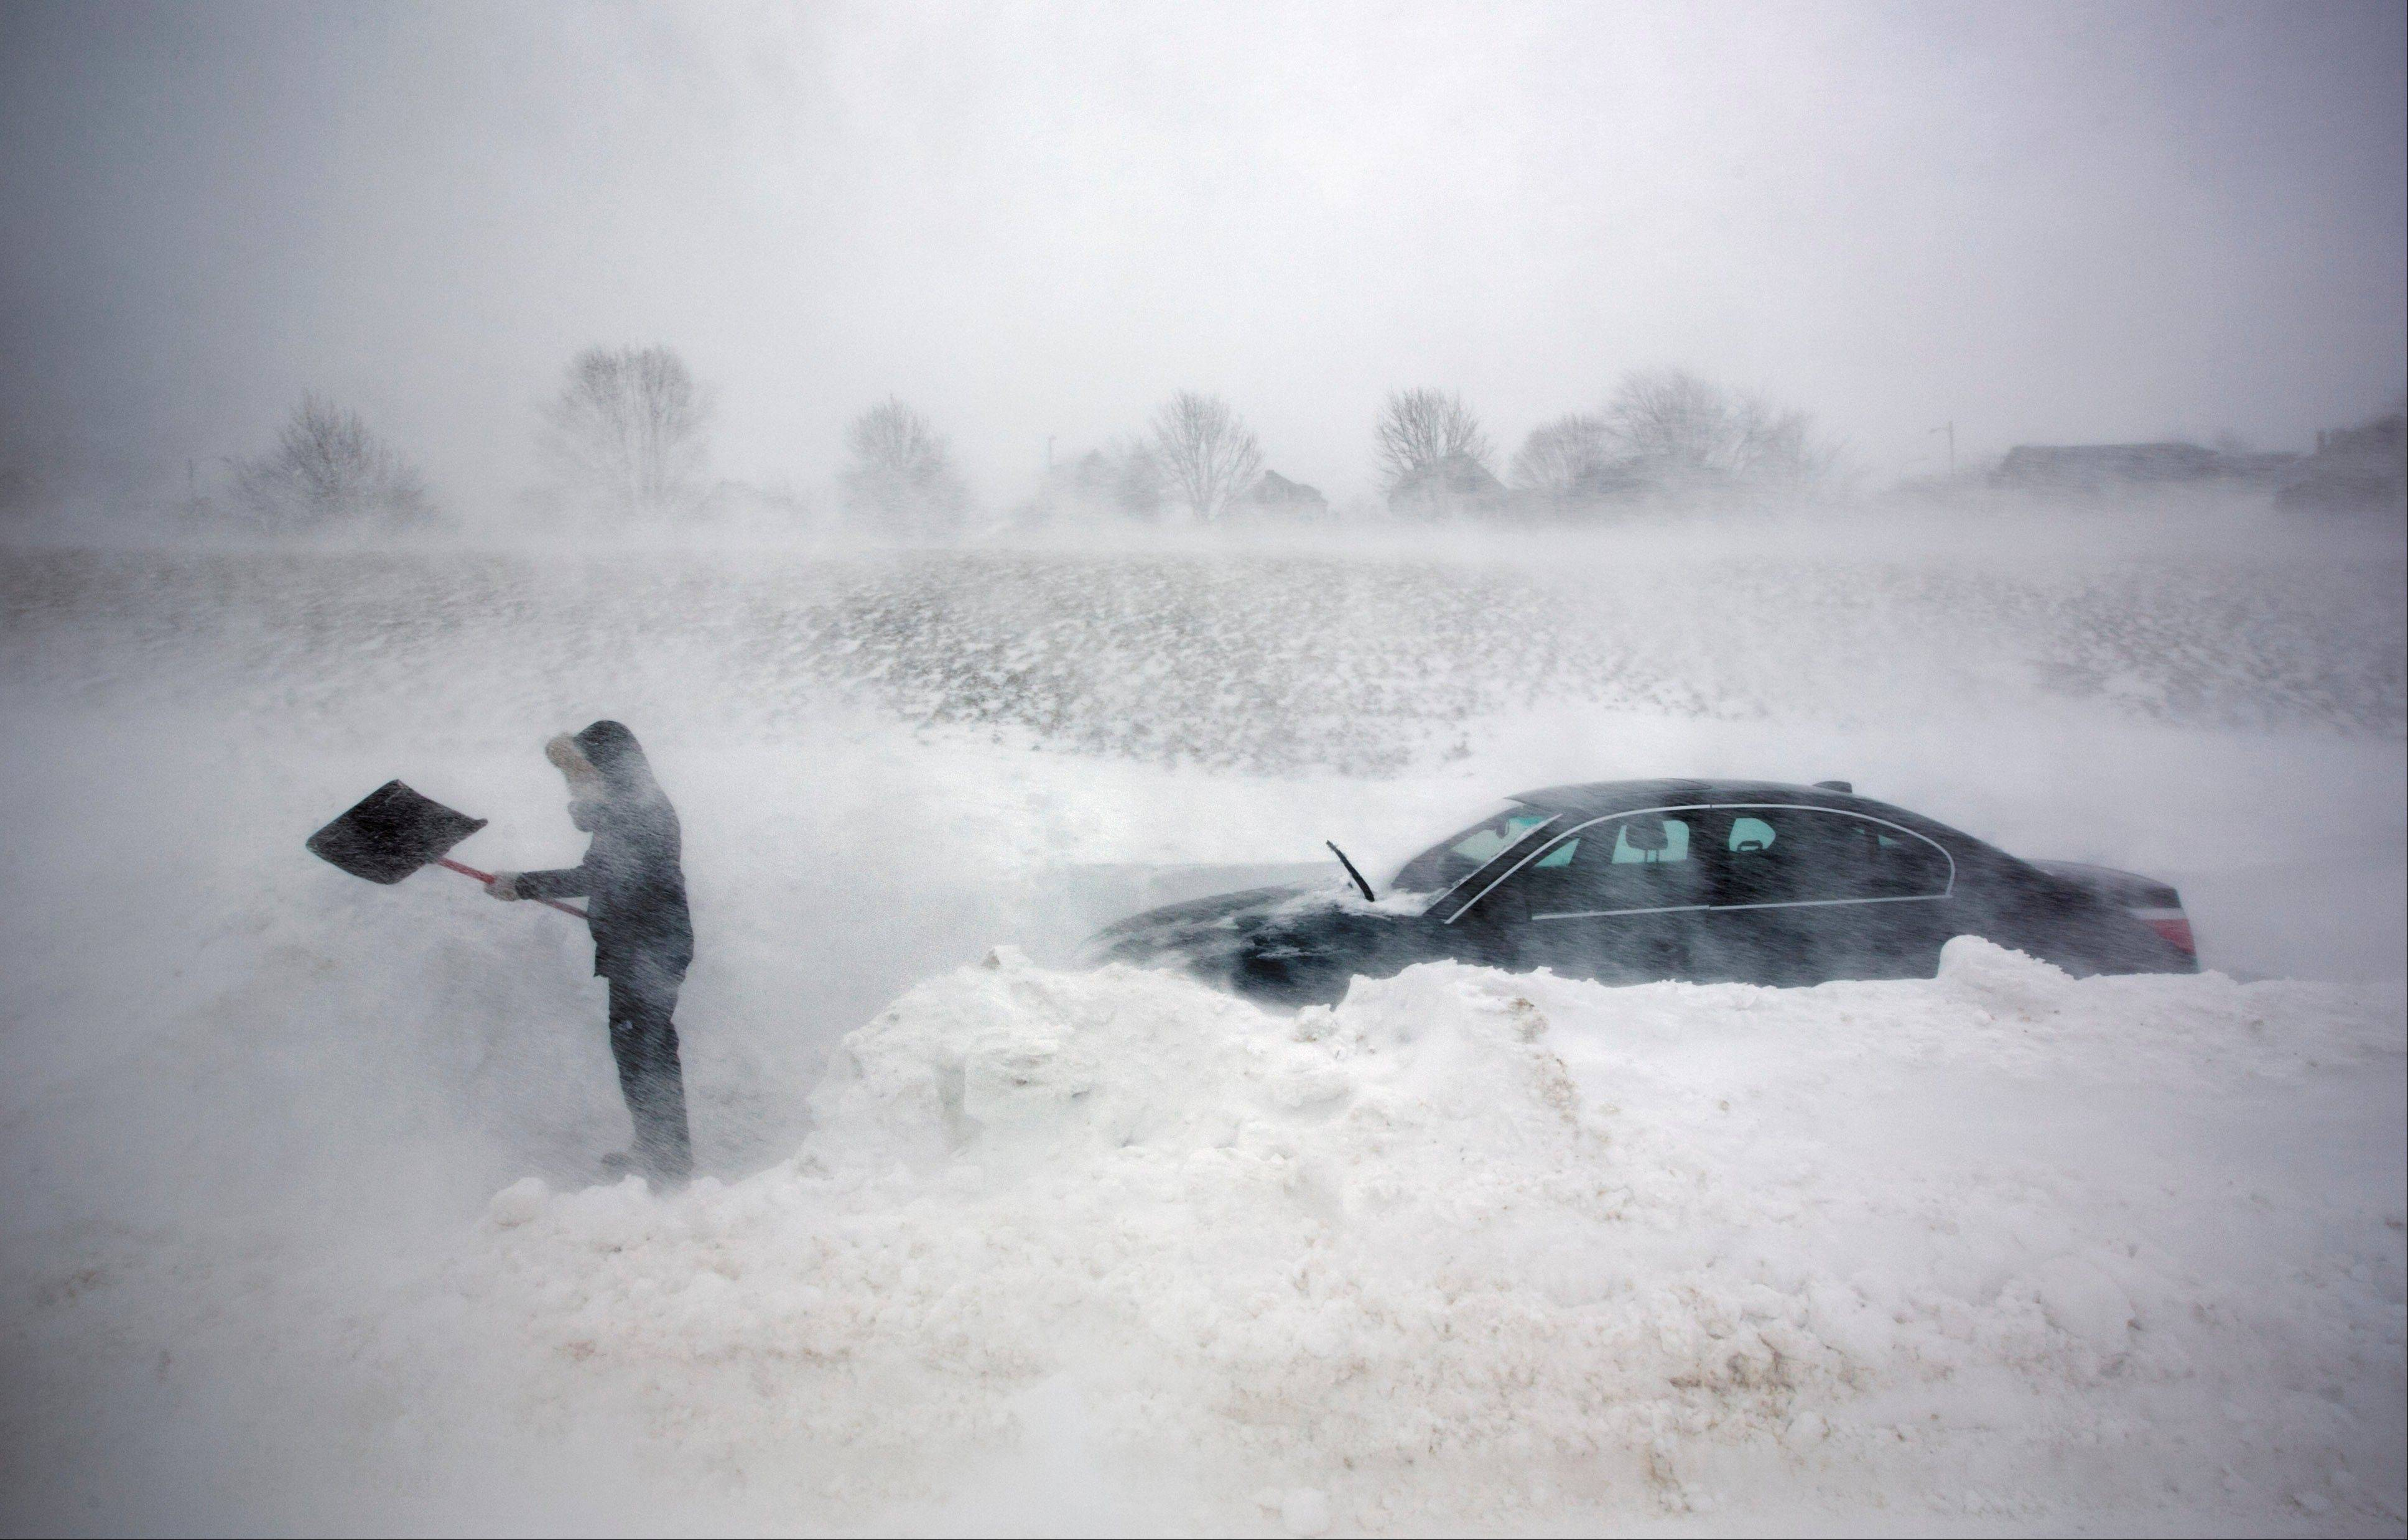 A woman digs out her car after it was blocked in by drifting snow during a blizzard, Saturday, Feb. 9, 2013, in Portland, Maine. The storm dumped more than 30 inches of snow as of Saturday afternoon, breaking the record for the biggest storm on record.